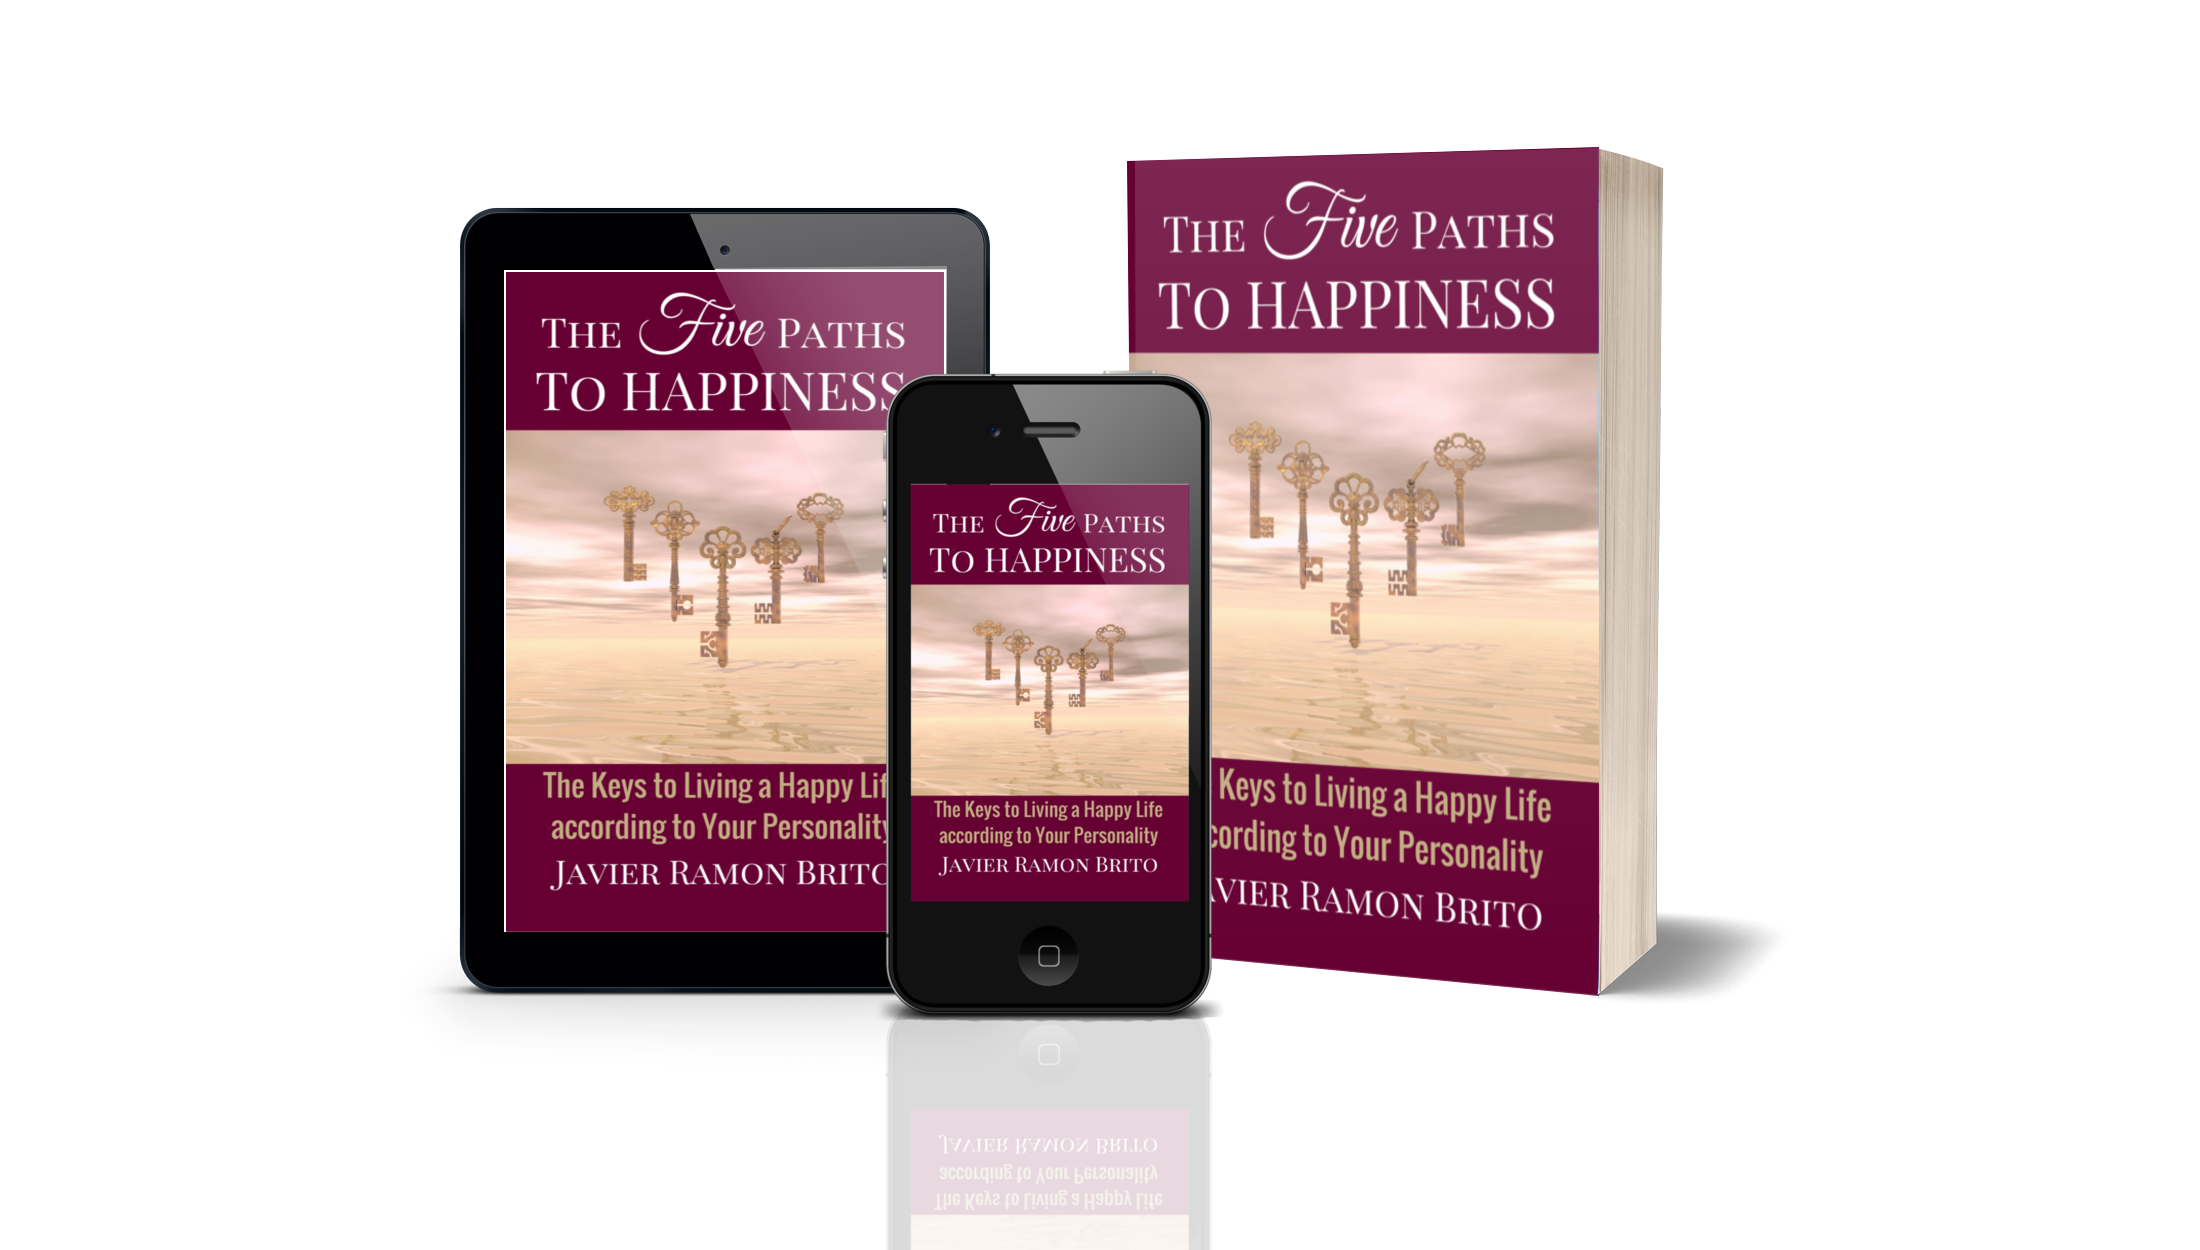 the five paths to happiness, download the ebook